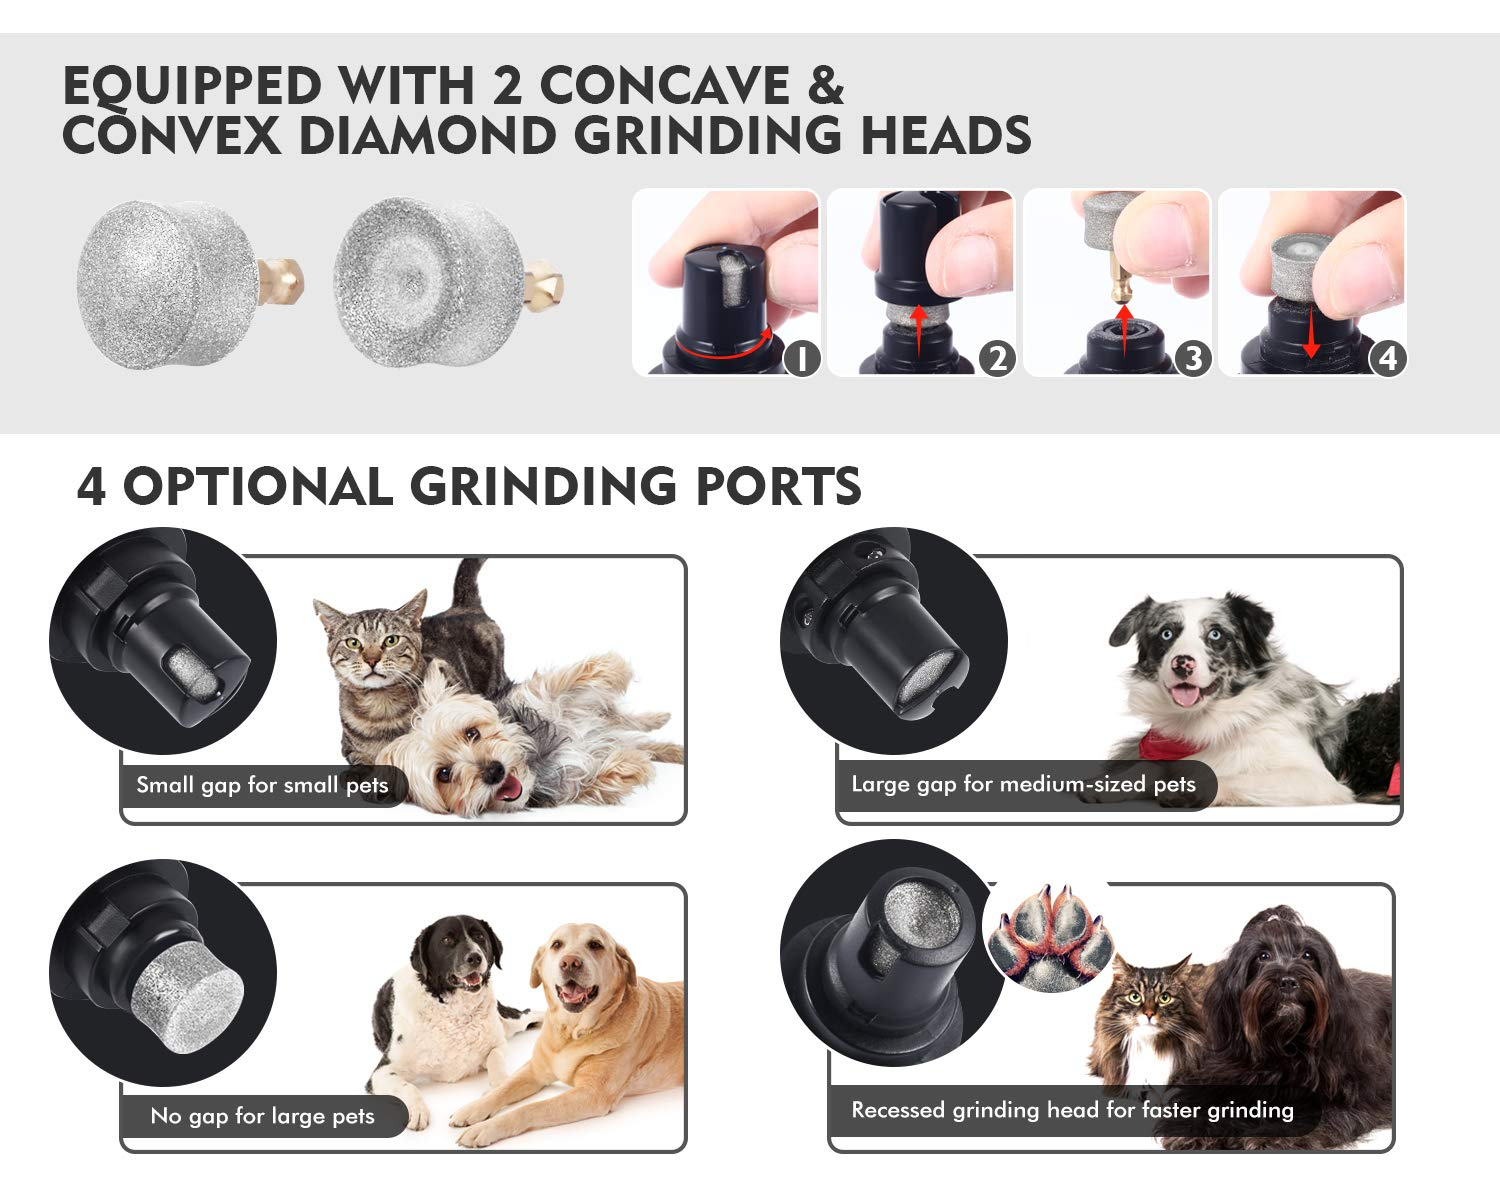 Pecute Dog Nail Grinder, Rechargeable Electric Pet Nail Trimmer for Paw Grooming, Gentle and Painless Nail Clipper for Medium and Large Dogs (2H Quick USB Charge 14H Long Work Time)